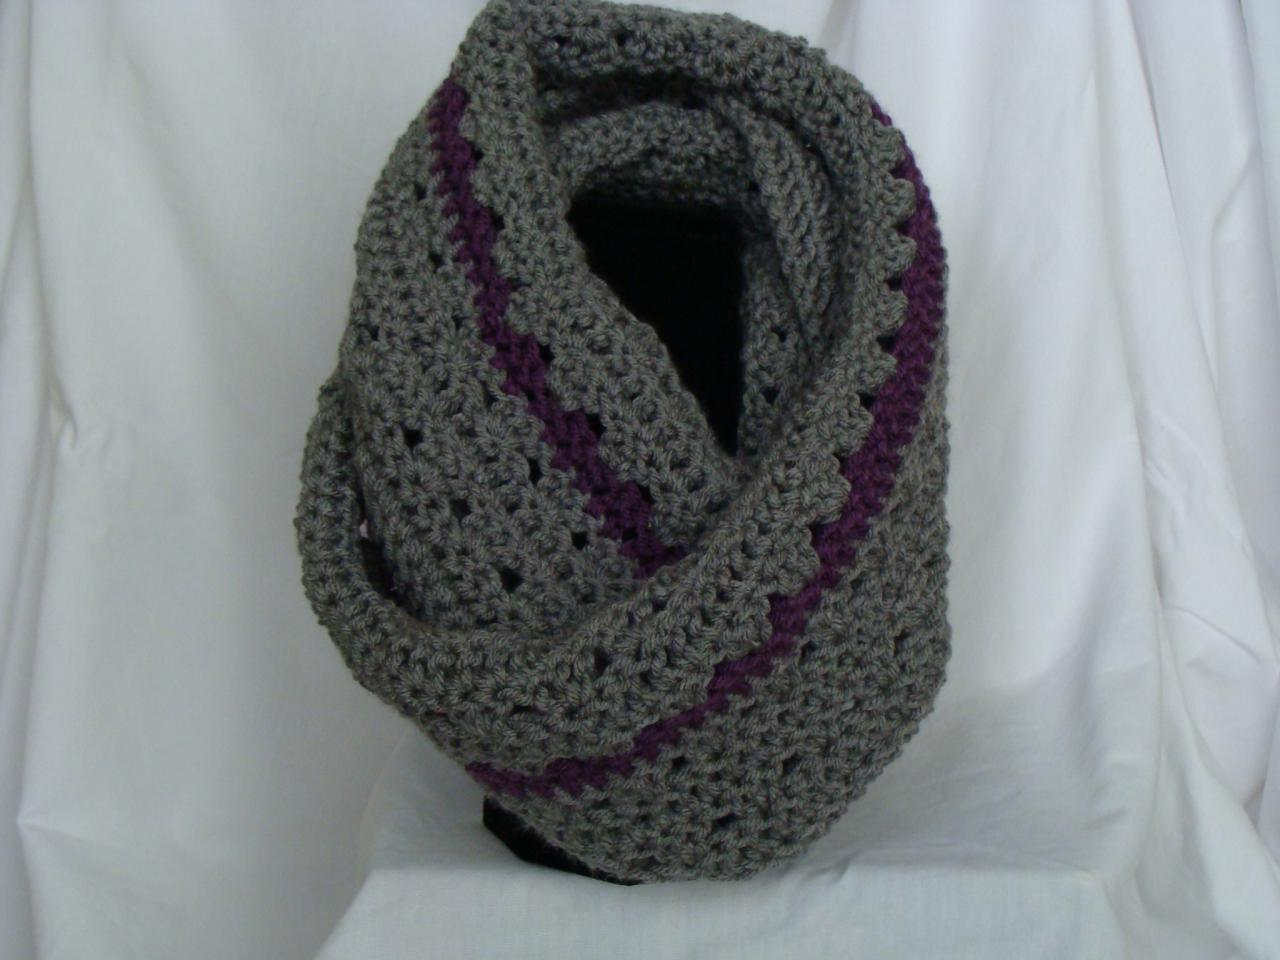 When you wear this Infinity scarf you will be so cozy warm I created  Easy Crochet Infinity Scarf